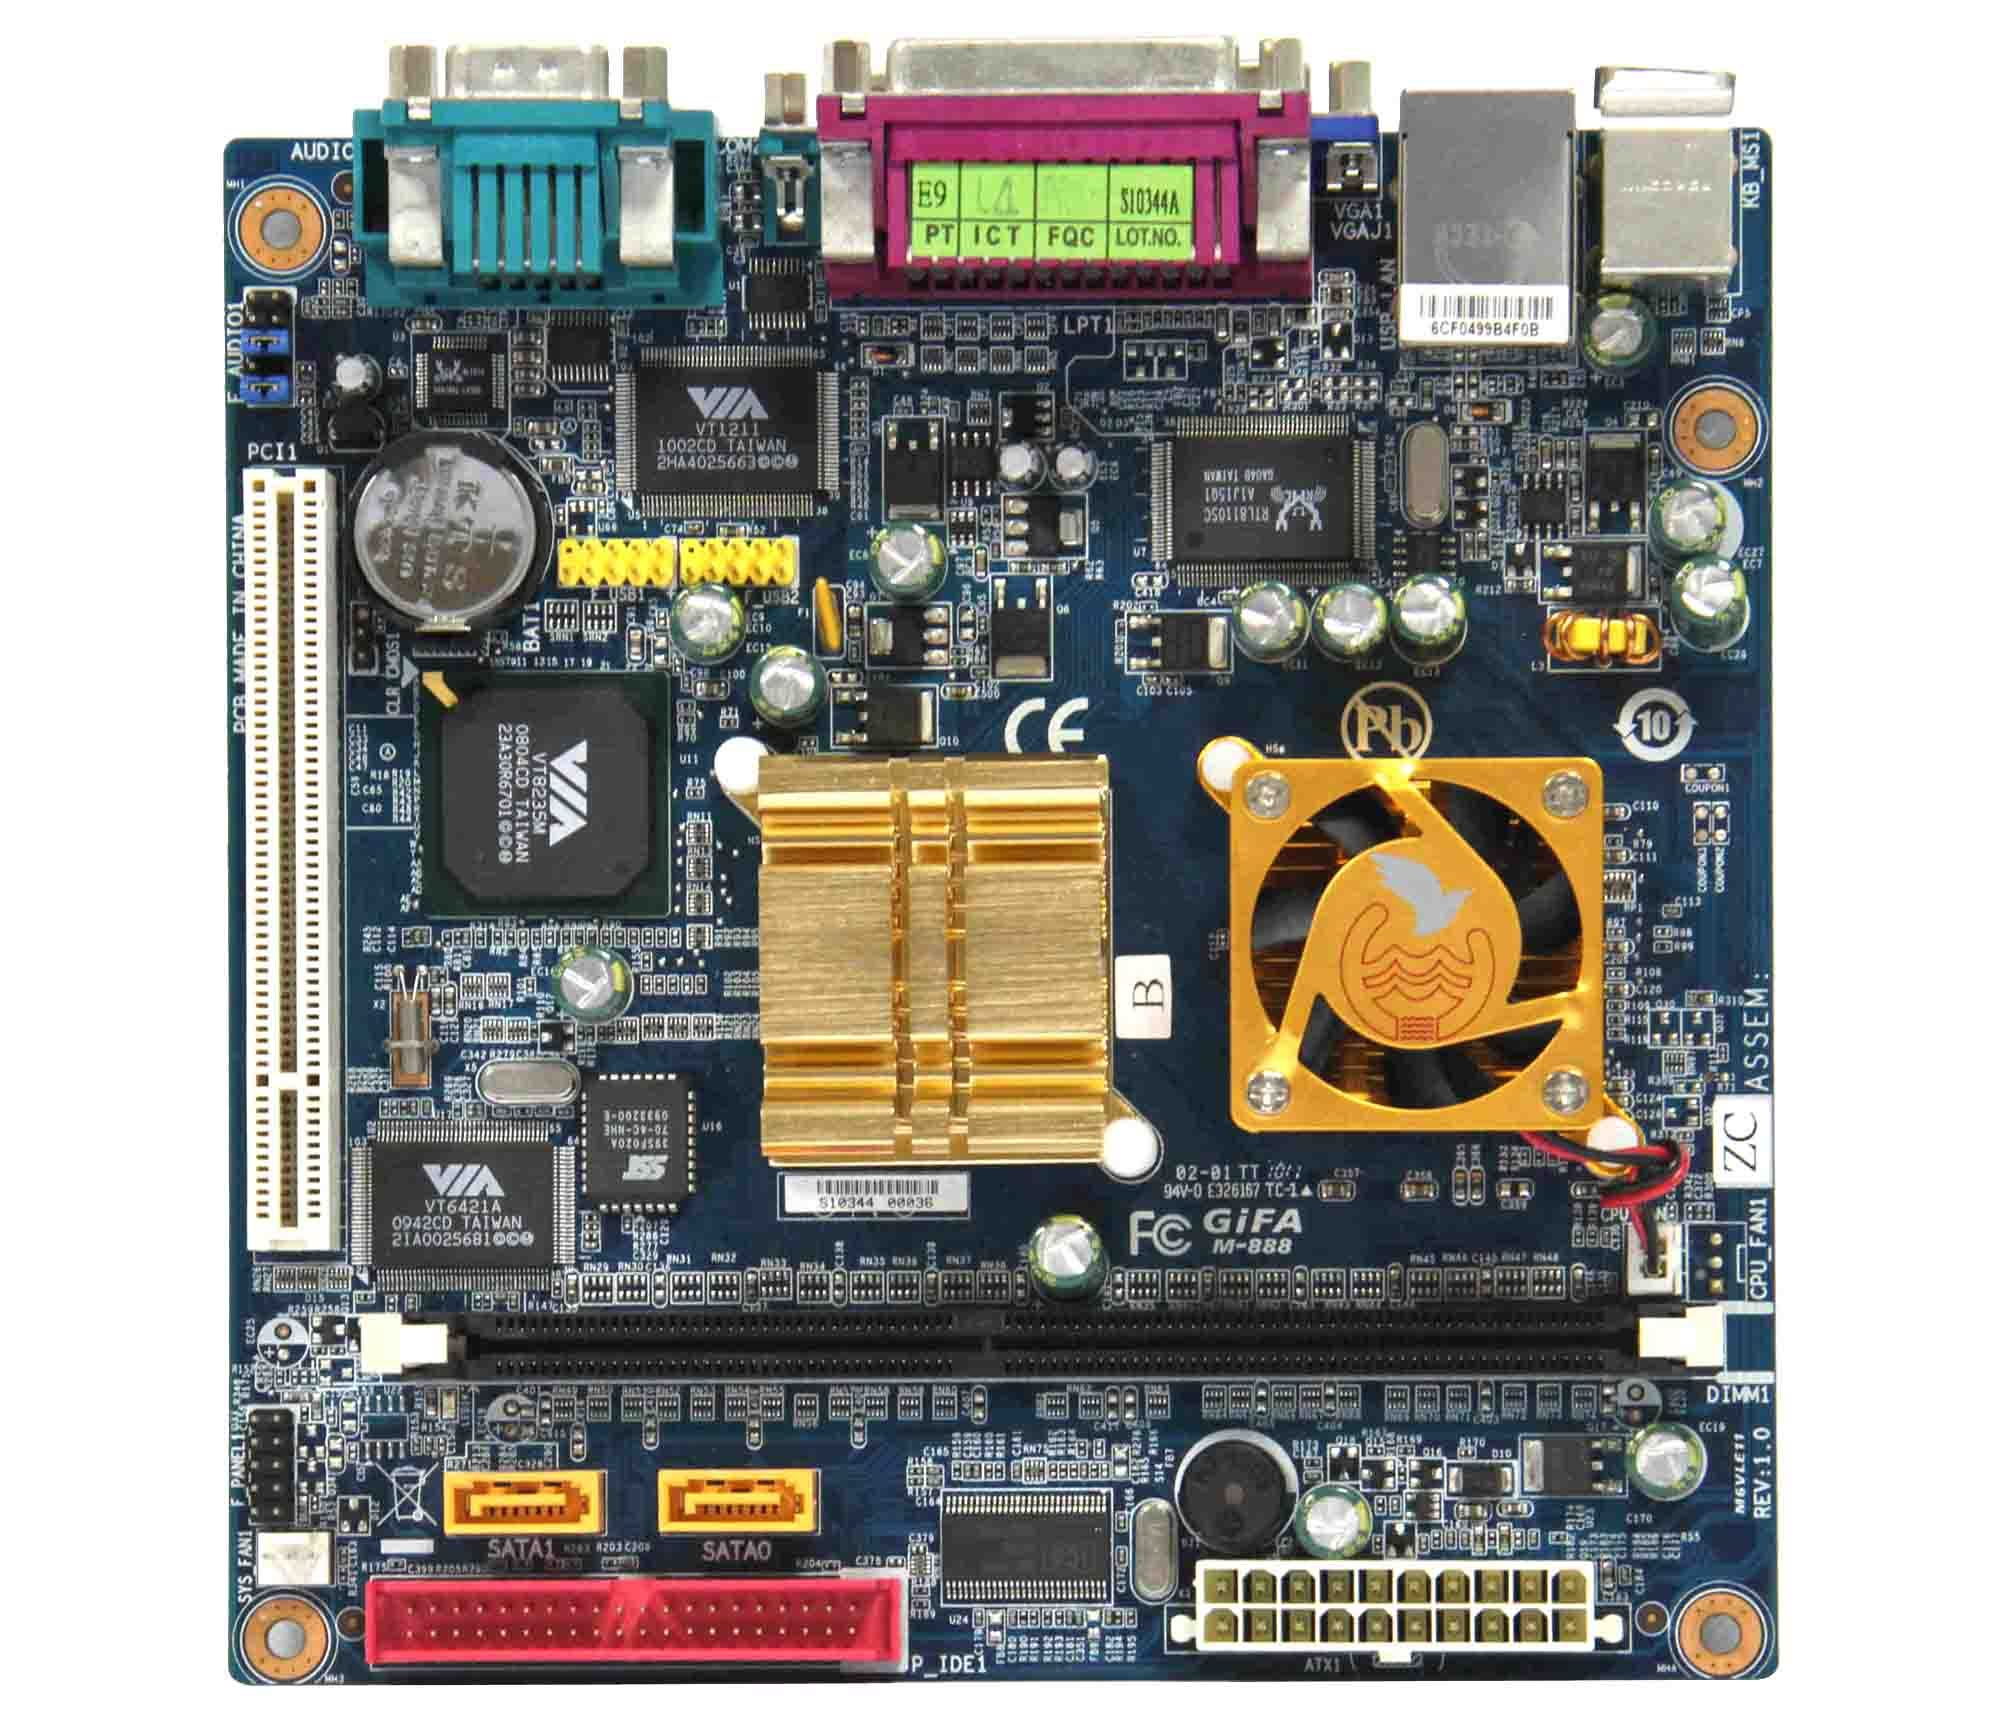 Gifa-888 Motherboard c3 industrial motherboard pos motherboard 100% Tested Good Quality